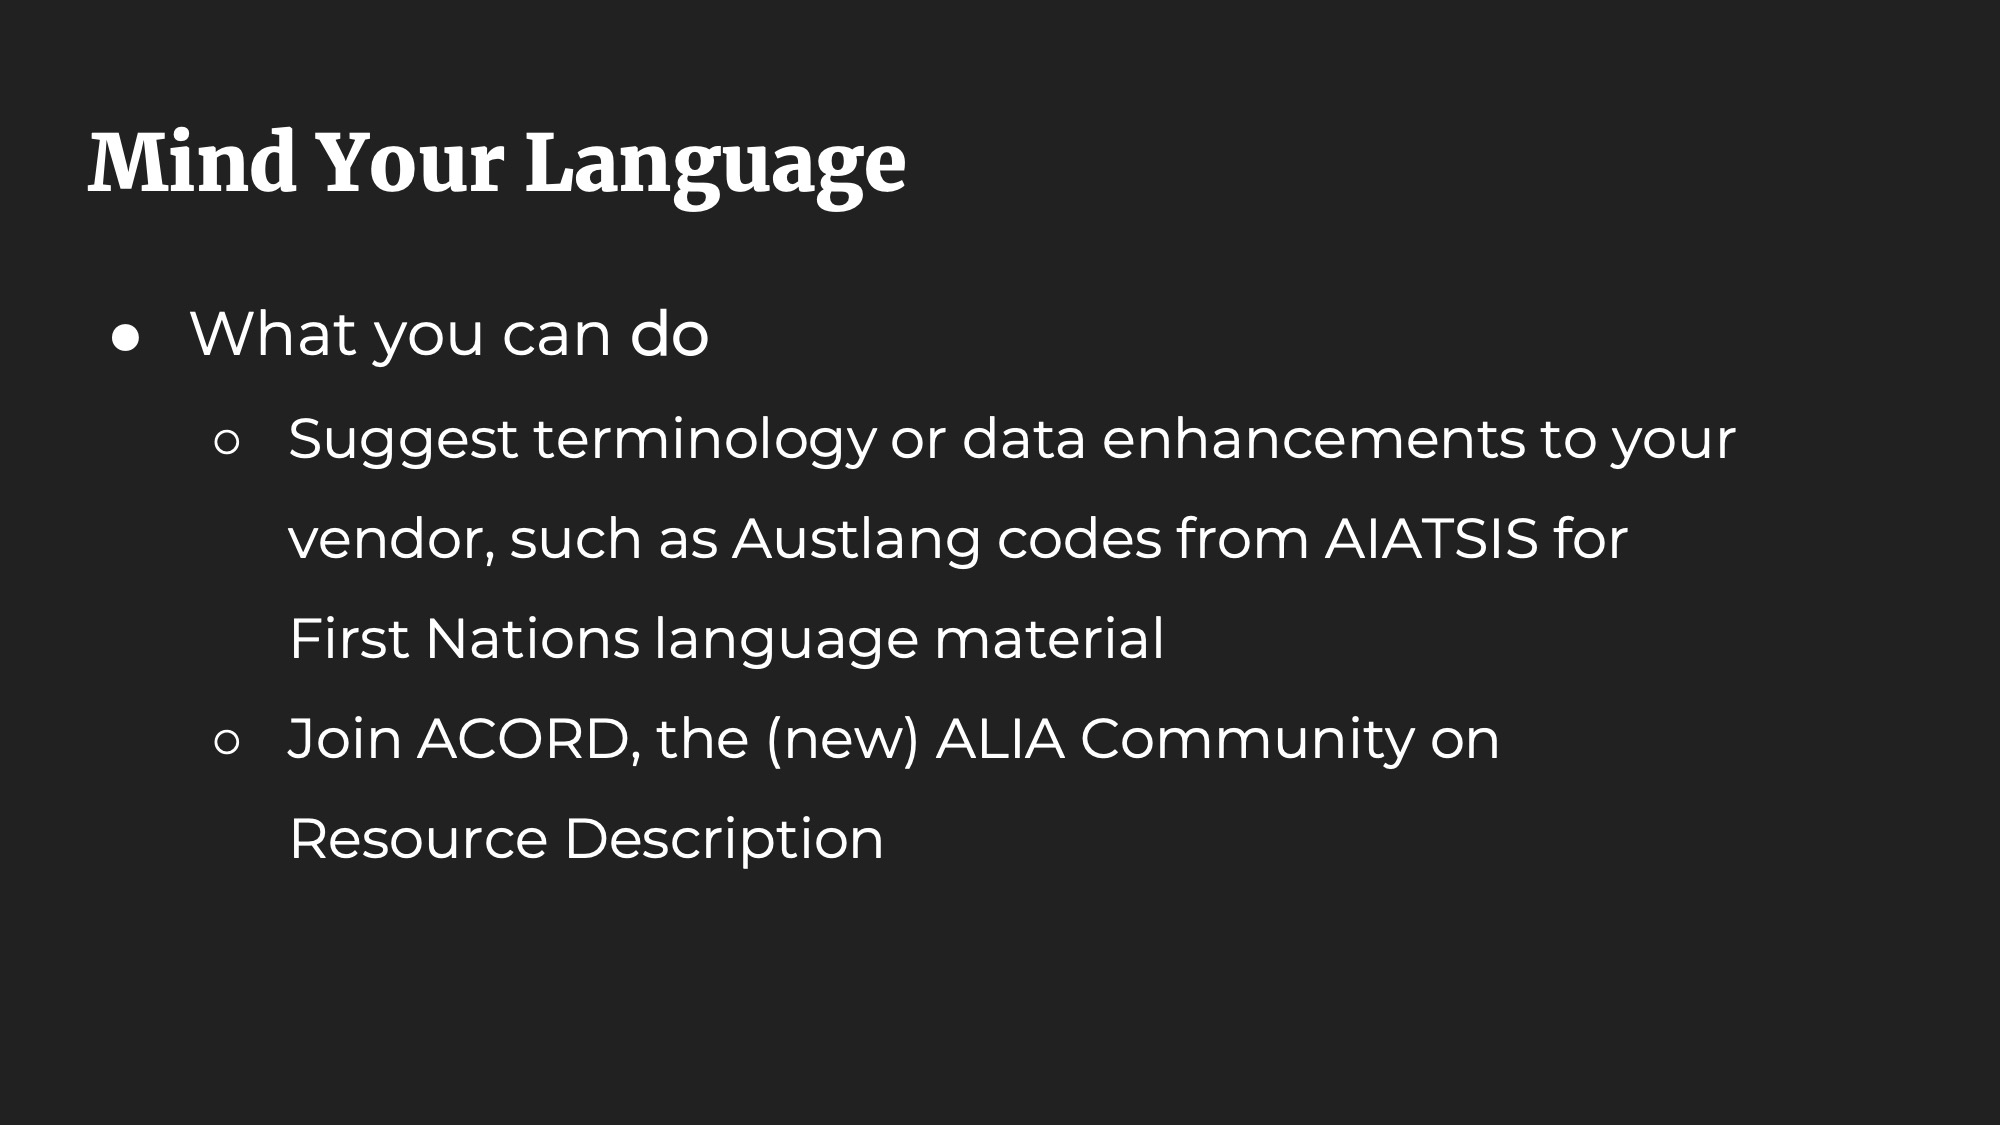 Mind Your Language. What you can do: Suggest terminology or data enhancements to your vendor, such as Austlang codes from AIATSIS for First Nations language material. Join ACORD, the (new) ALIA Community on Resource Description